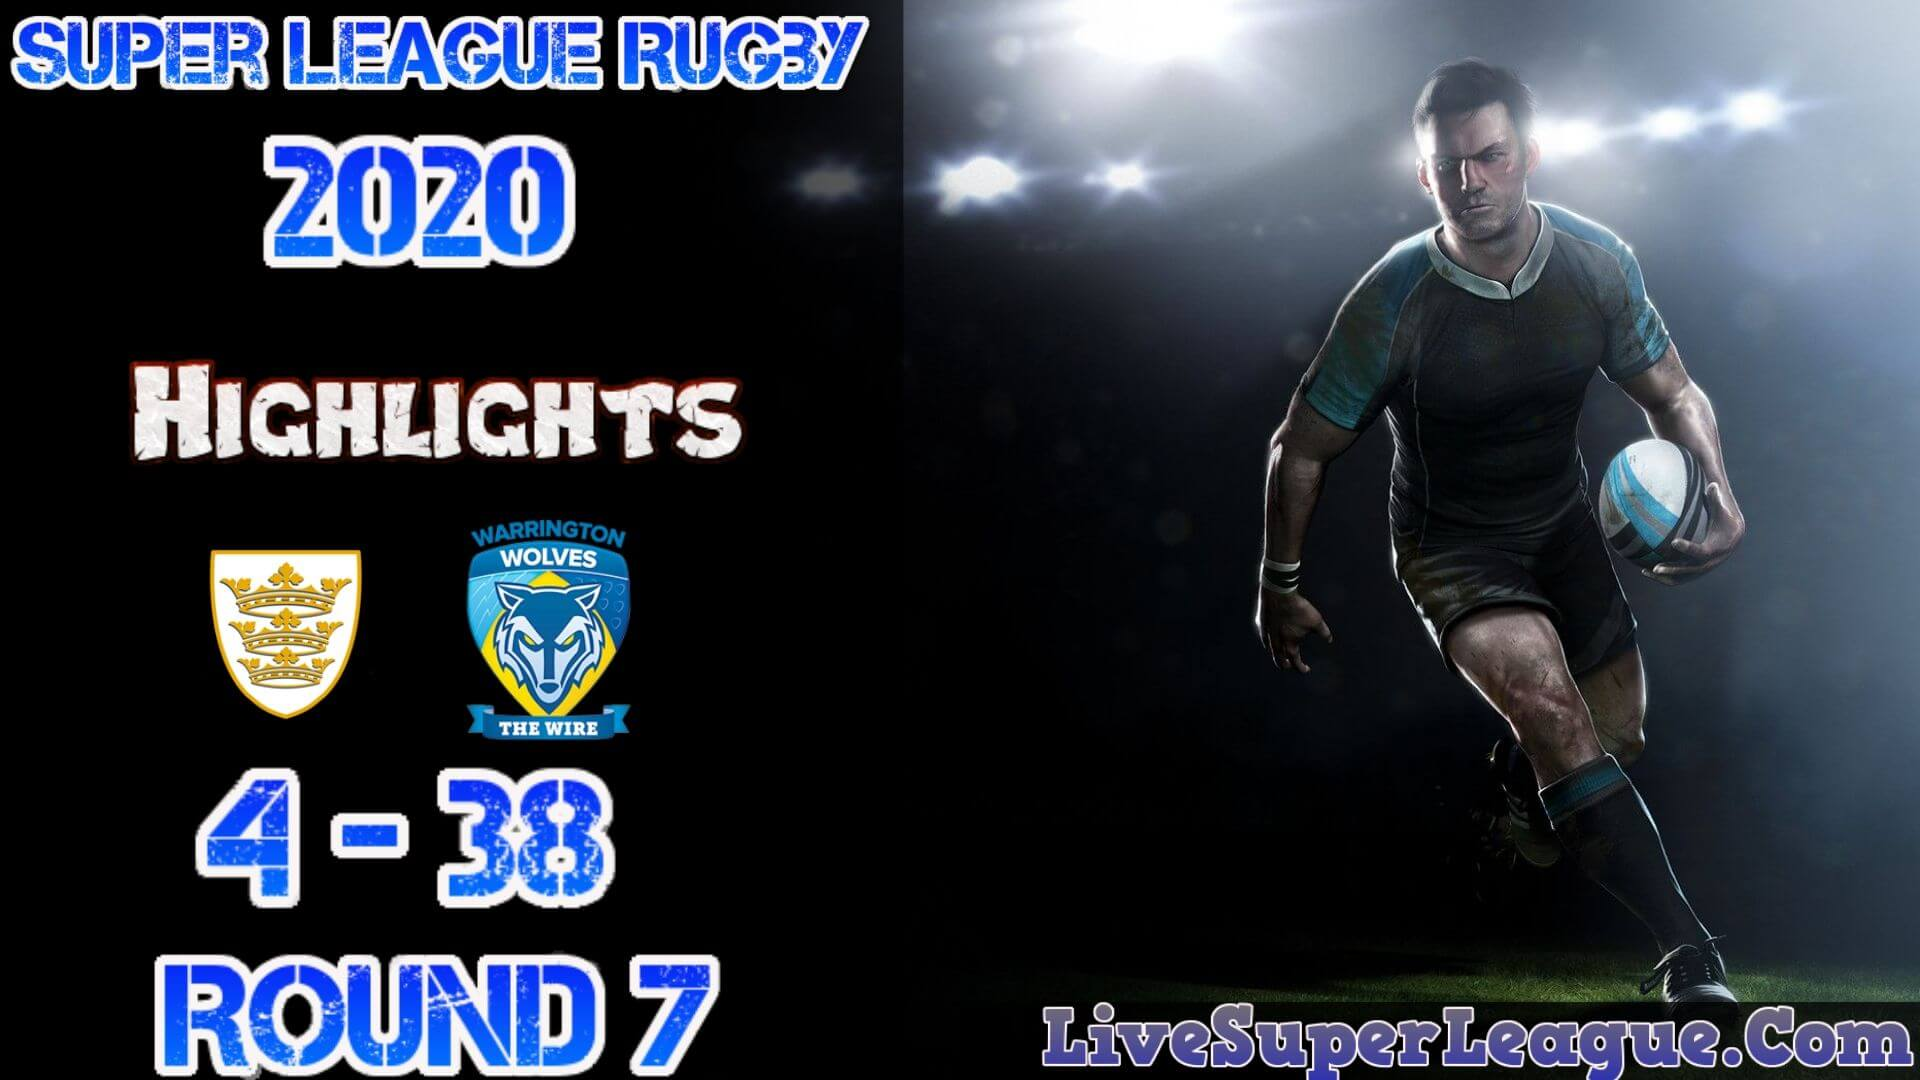 Hull FC Vs Warrington Super League Rugby Result 2020 Rd7